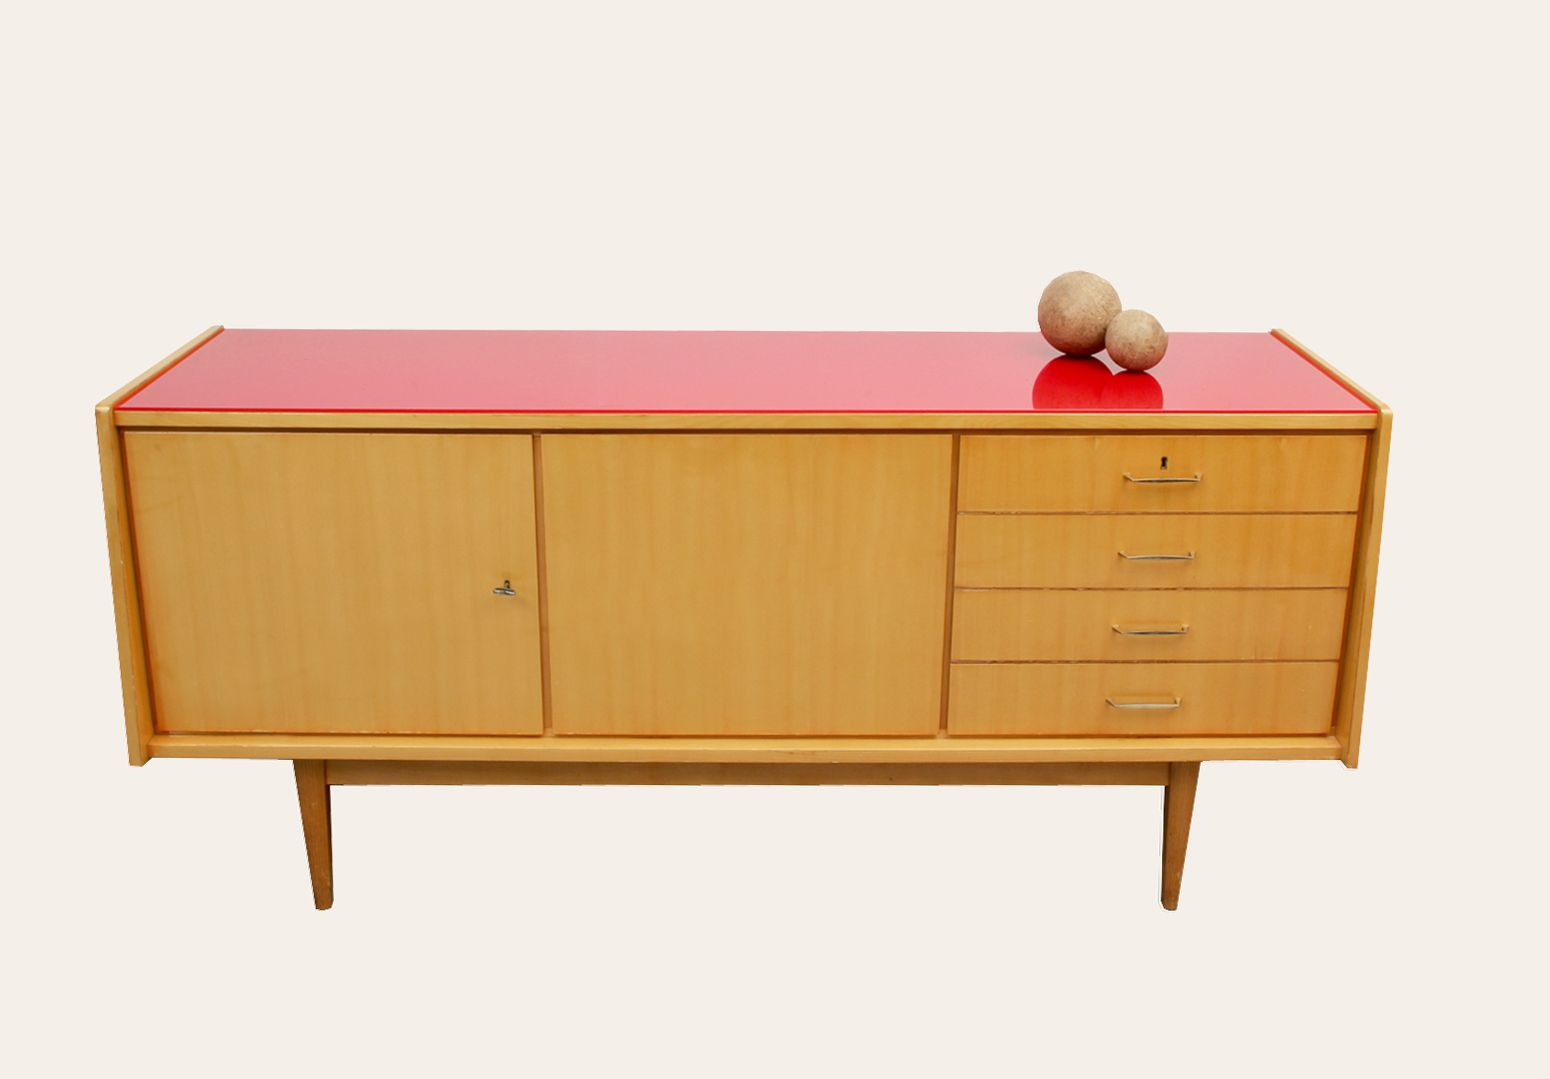 Mid Century Ash Sideboard with Red Glass Top, 1950s - Mid Century Ash Sideboard With Red Glass Top, 1950s For Sale At Pamono